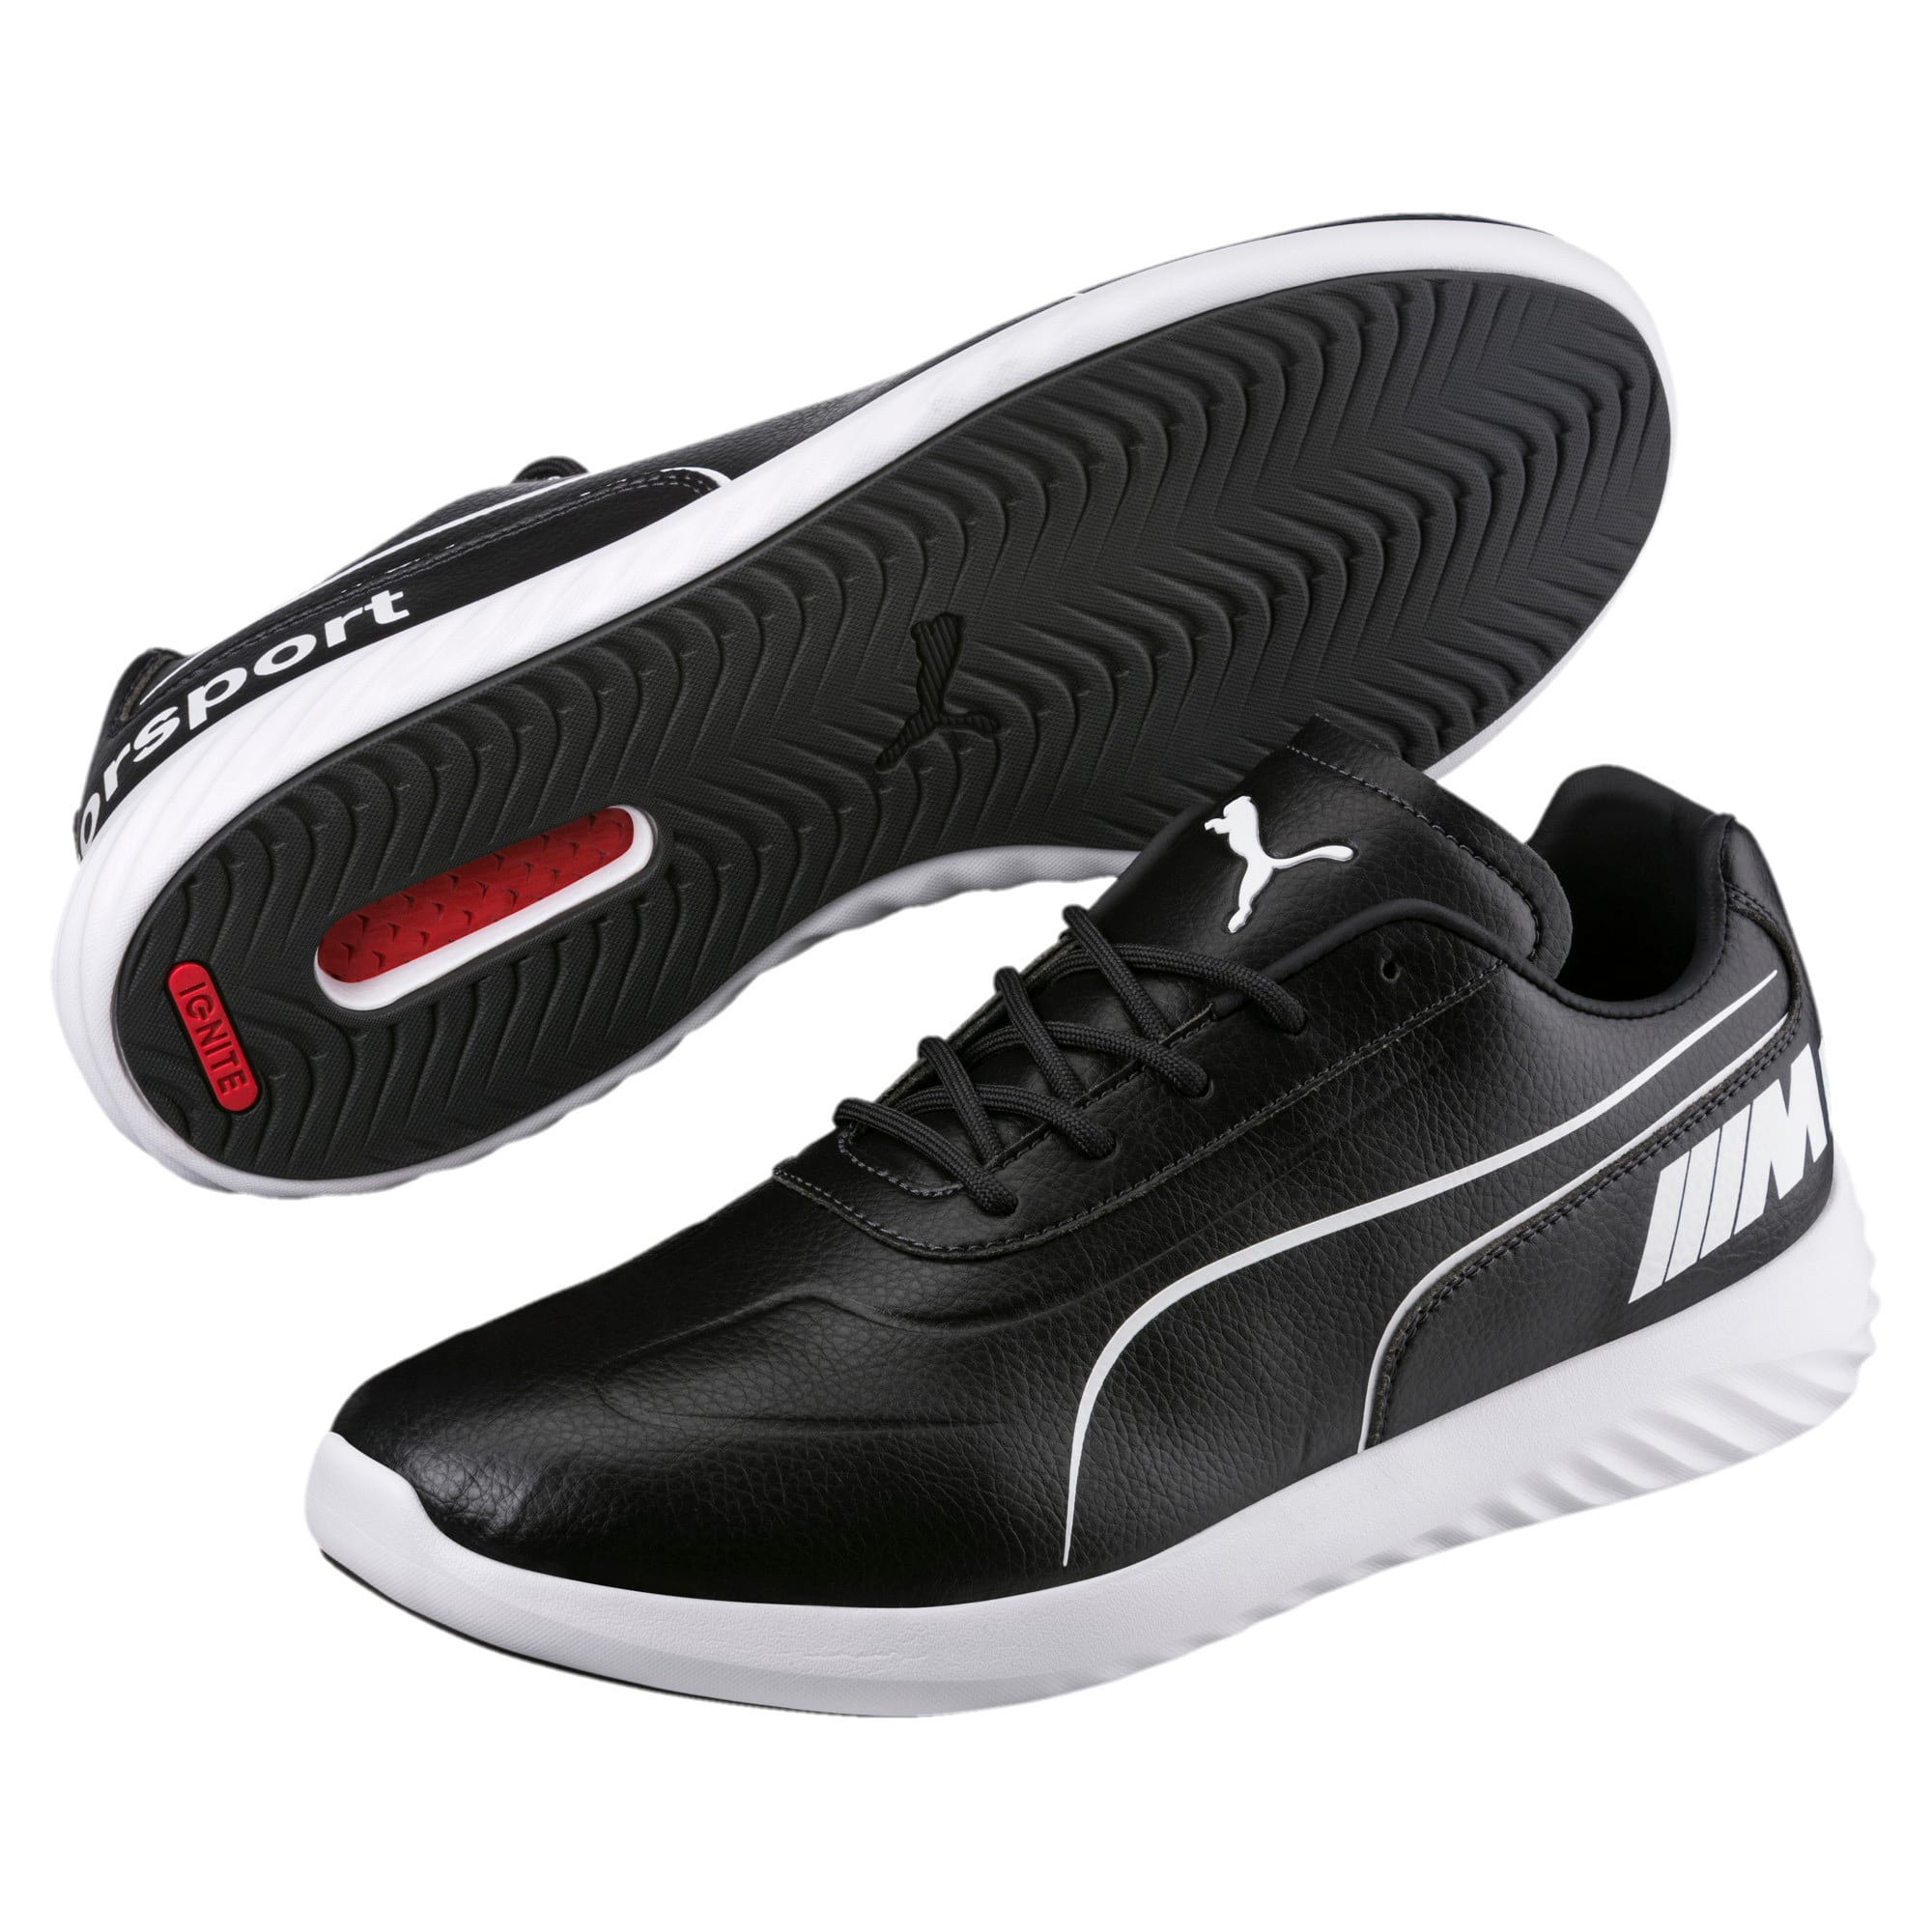 Thumbnail 2 of BMW M Motorsport SpeedCat Evo Synth Sneakers, Anthracite-Puma White, medium